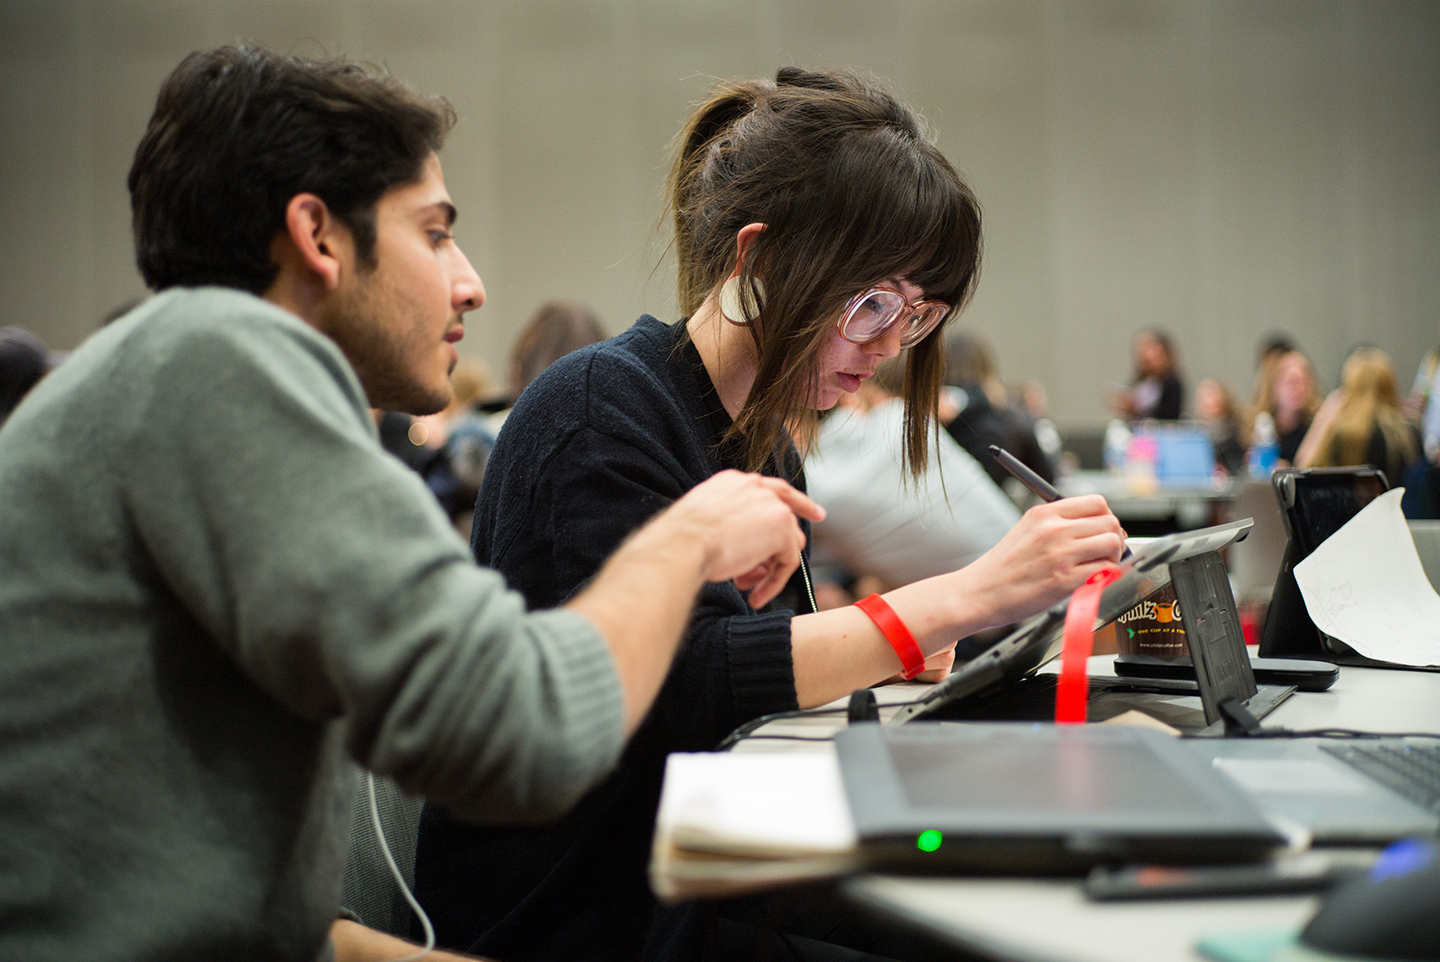 SJSU students received input from professional designers during a competition at the Adobe CreativeJam Feb. 24, co-hosted by SJSU and Adobe. (Photo: James Tensuan, '15 Journalism)